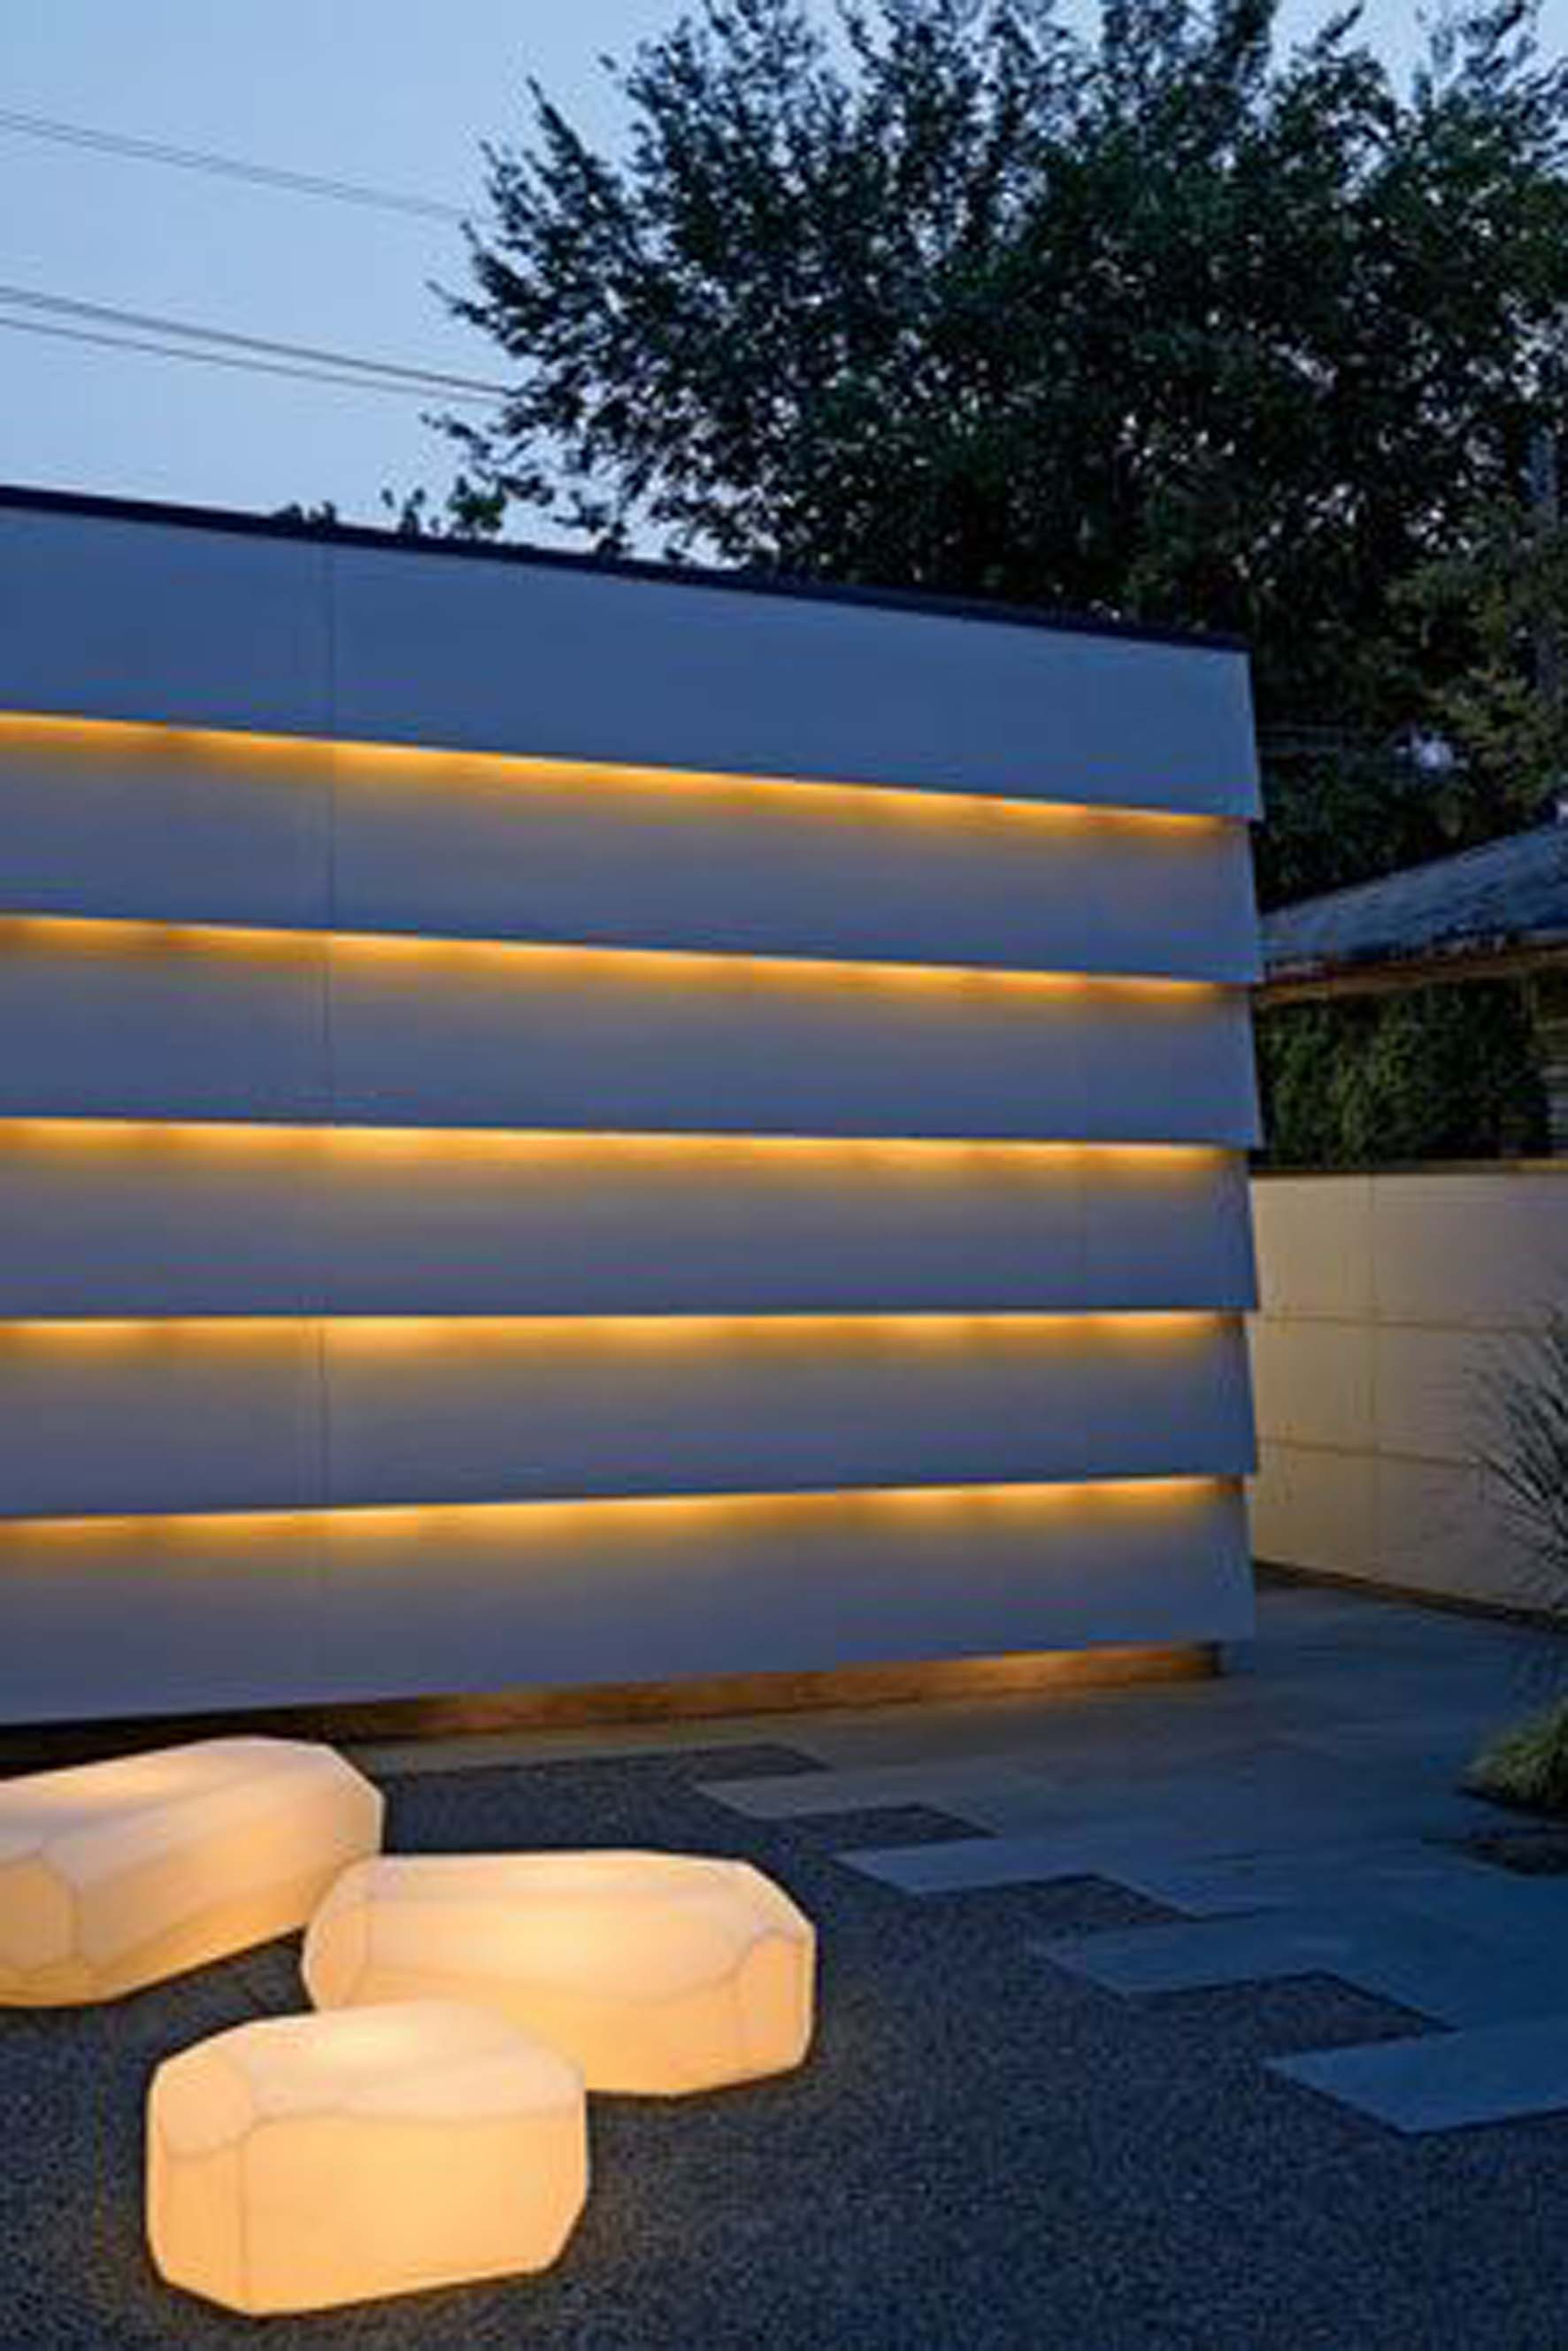 LED wall in the garden